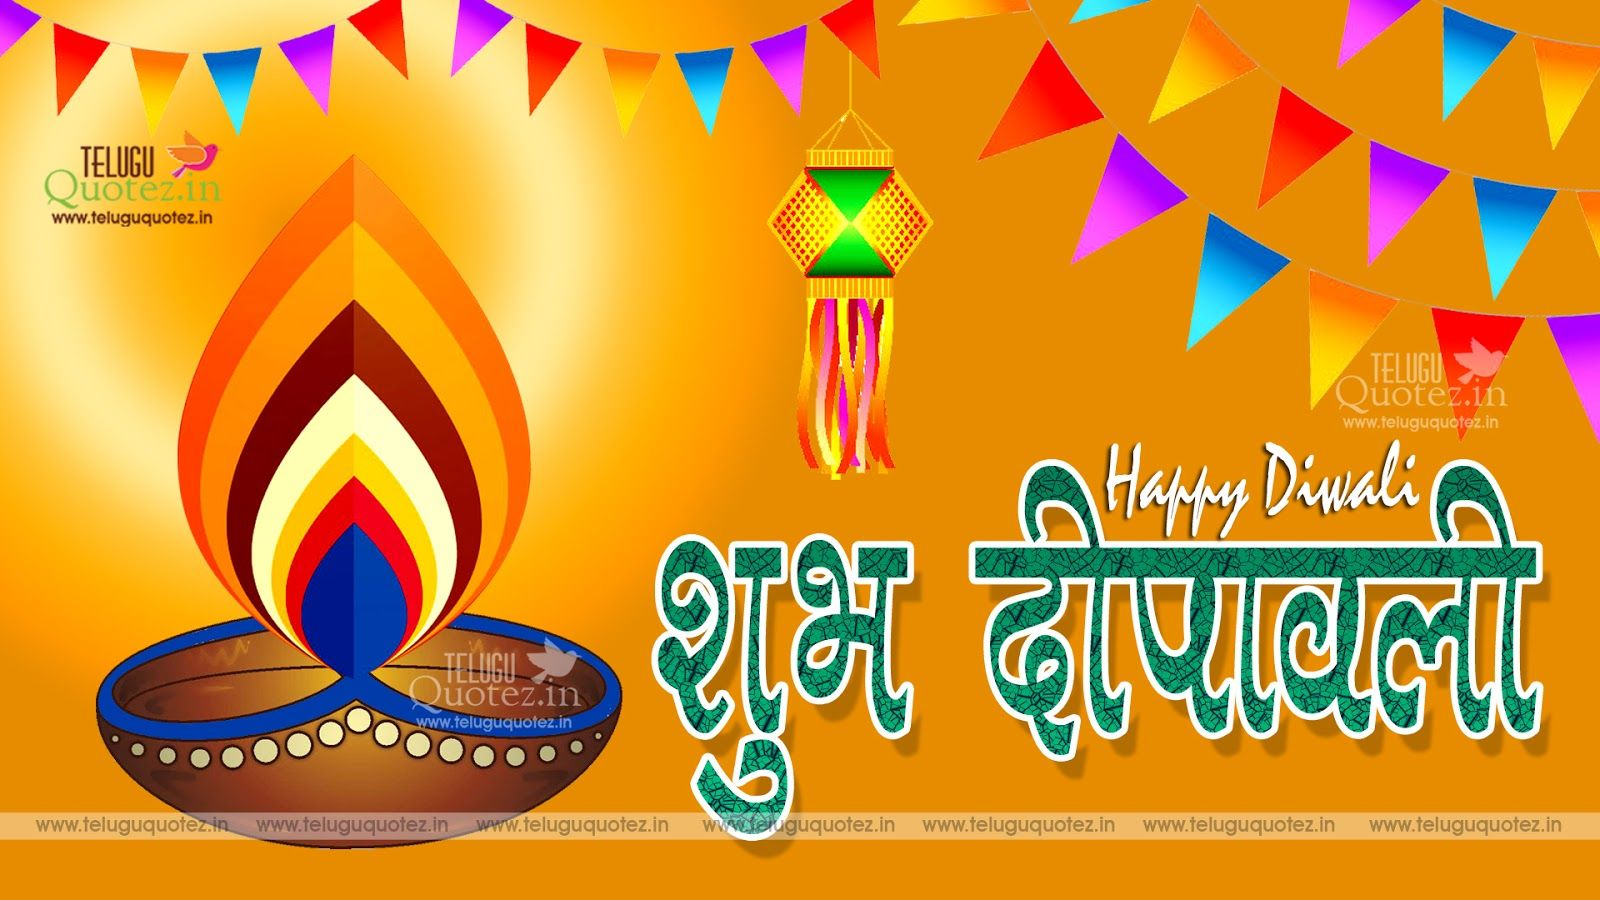 Happy diwali hindi quotes and messages online top hindi diwali happy diwali hindi quotes and greetings hd images online kristyandbryce Gallery